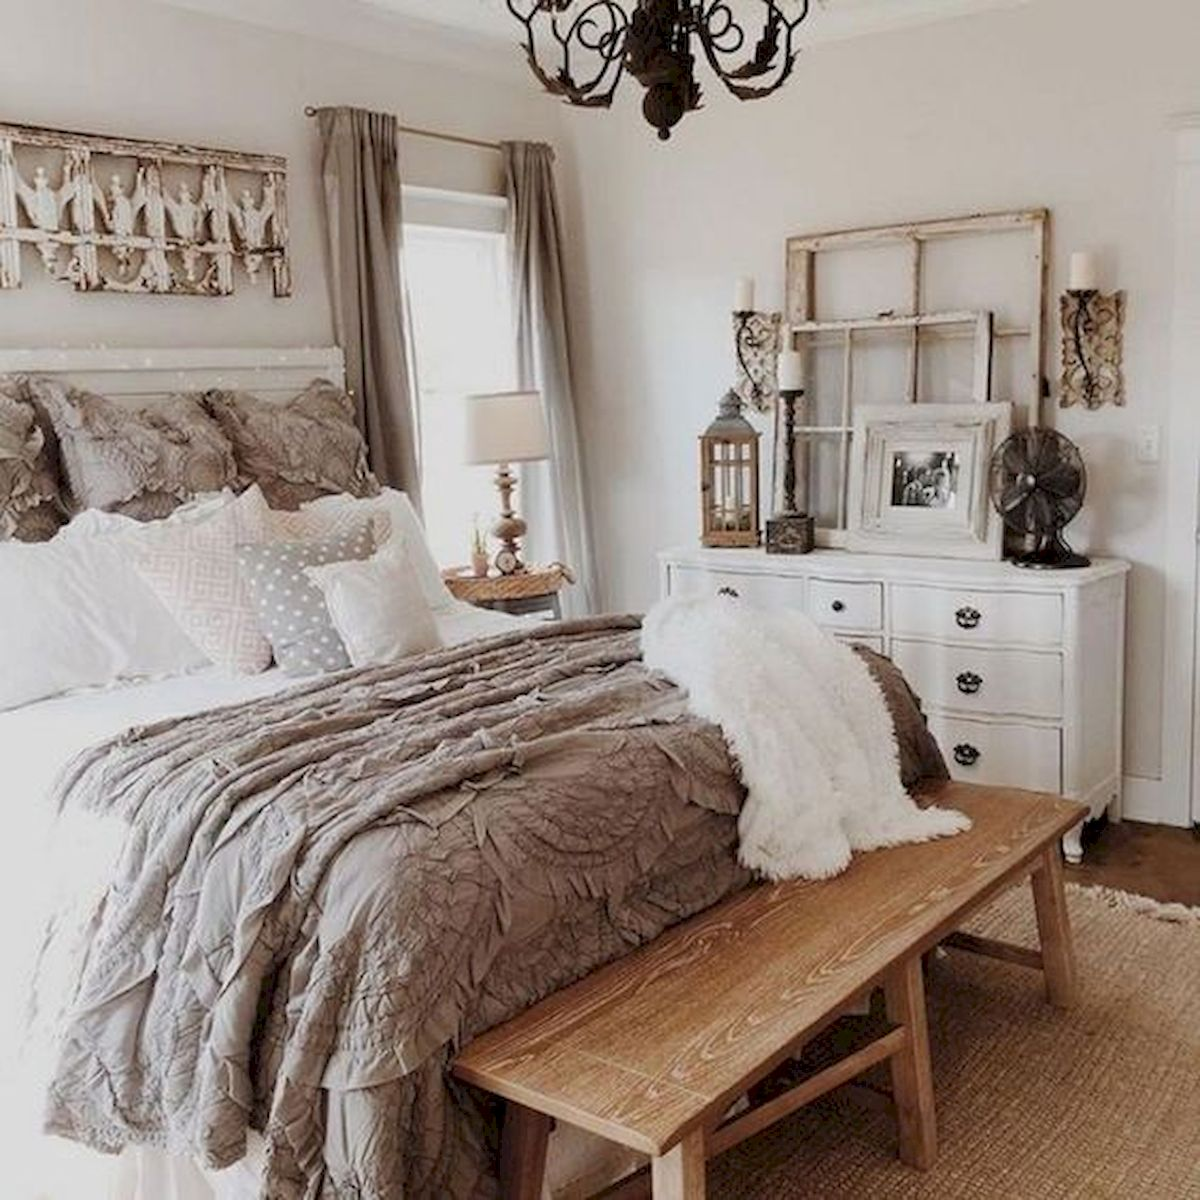 50 Awesome Farmhouse Bedroom Decor Ideas And Remodel (13)